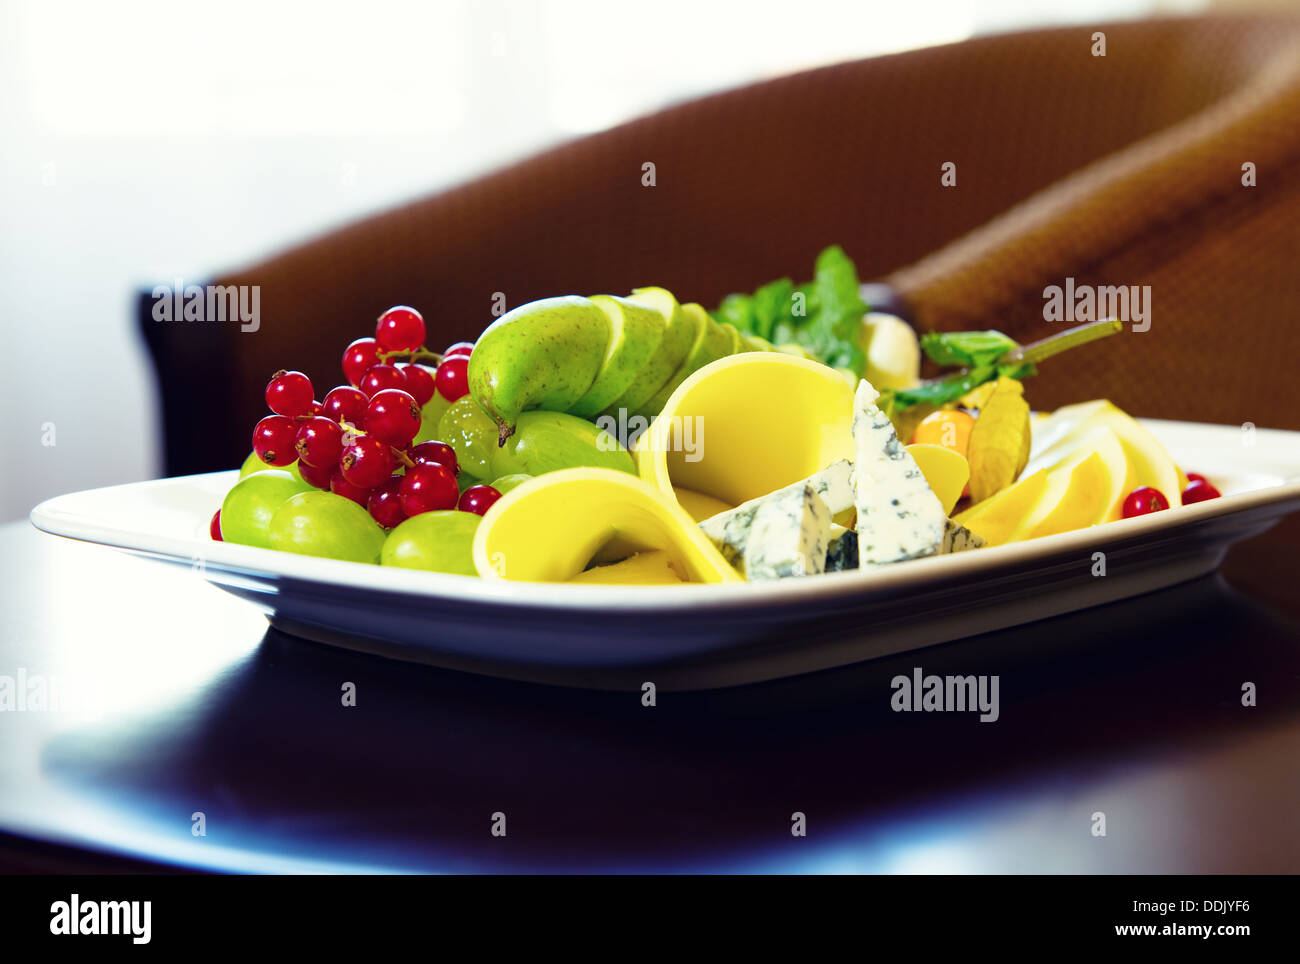 Appetizer - Stock Image